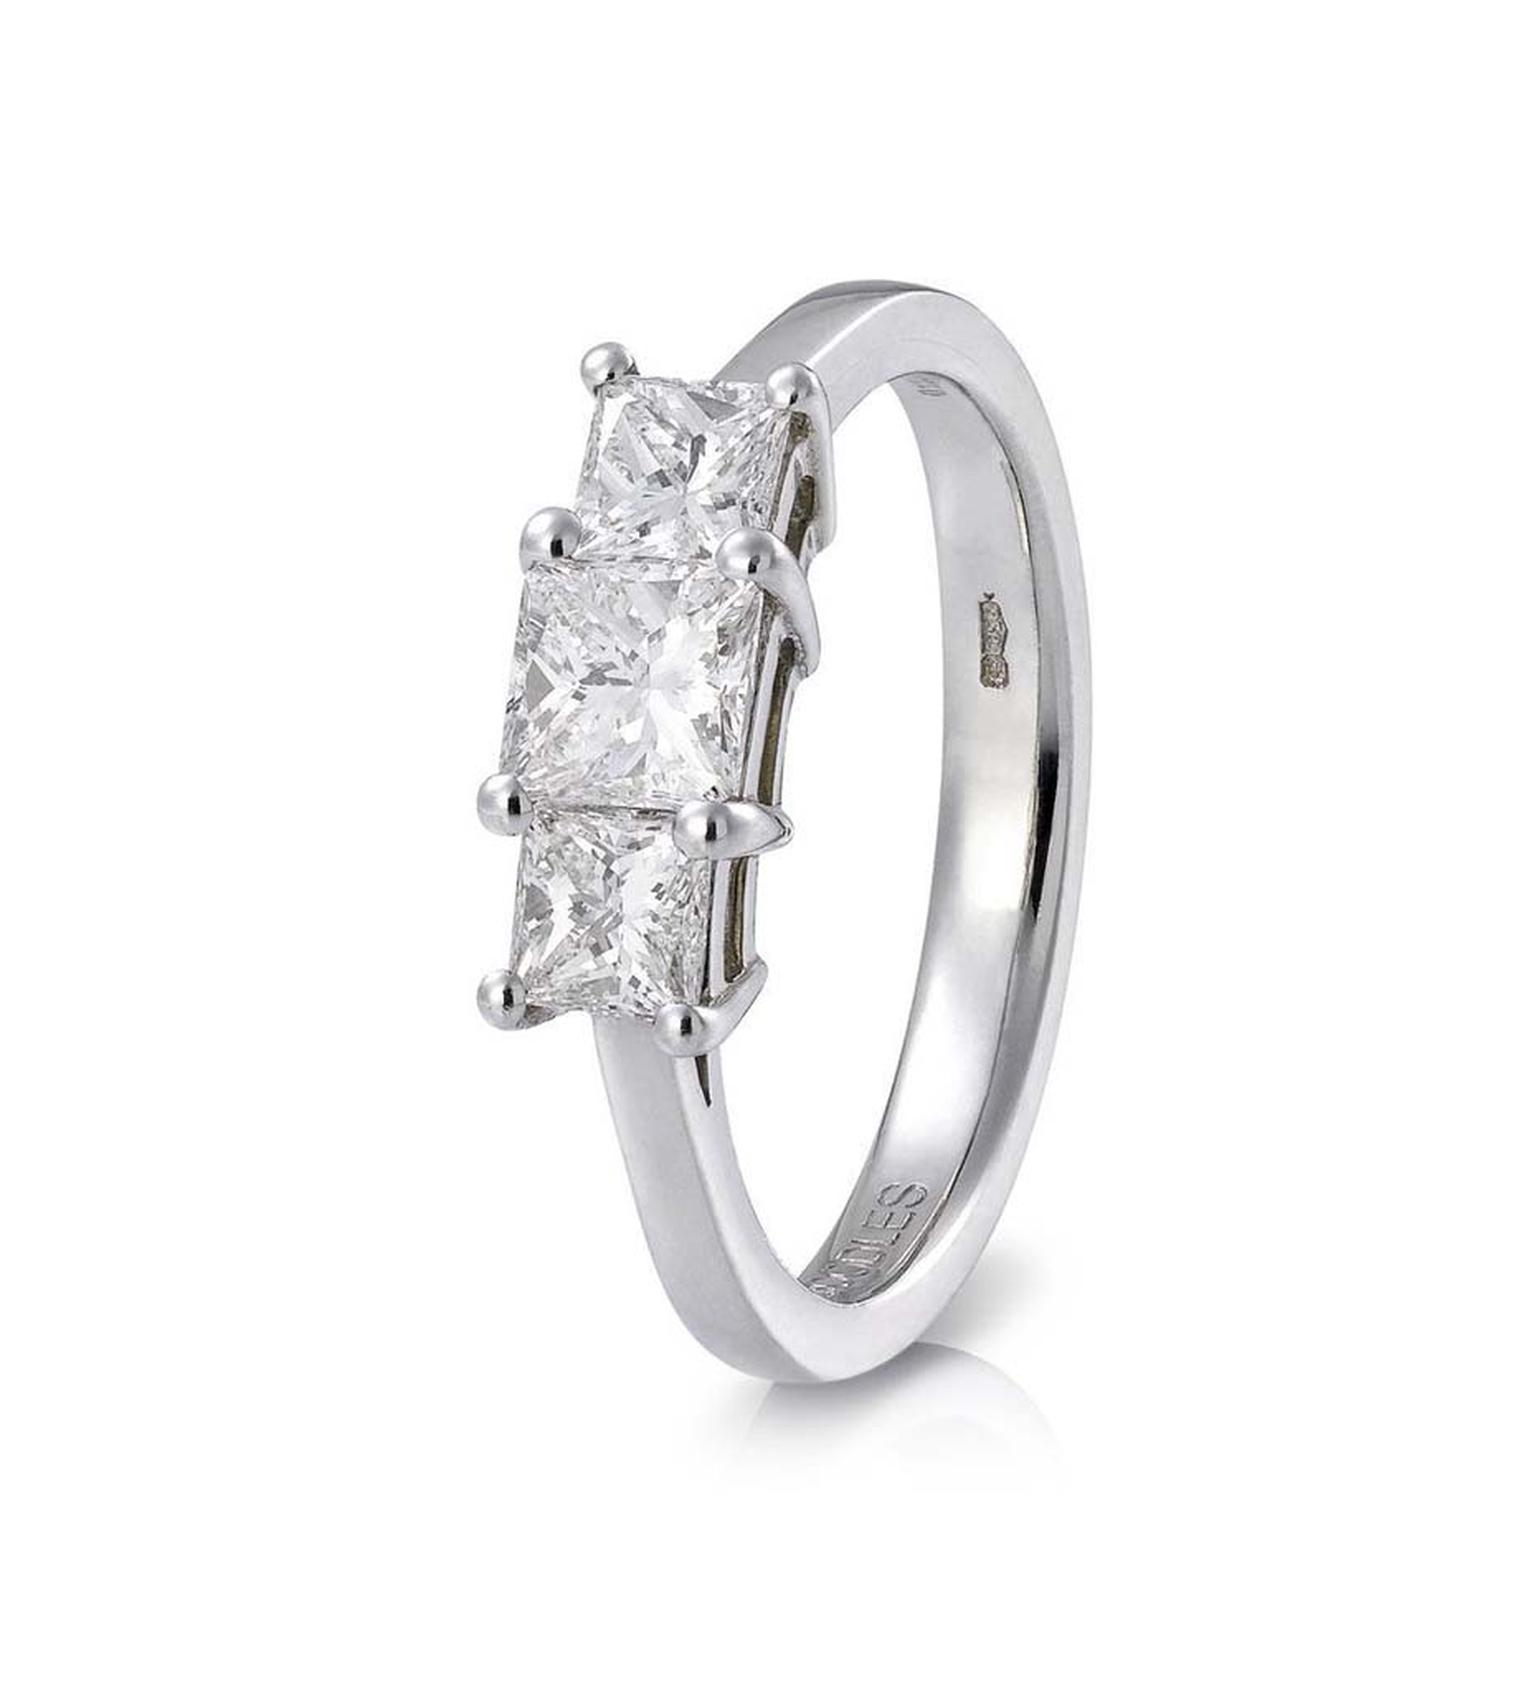 Trilogy Radiant Cut Diamond Engagement Ring